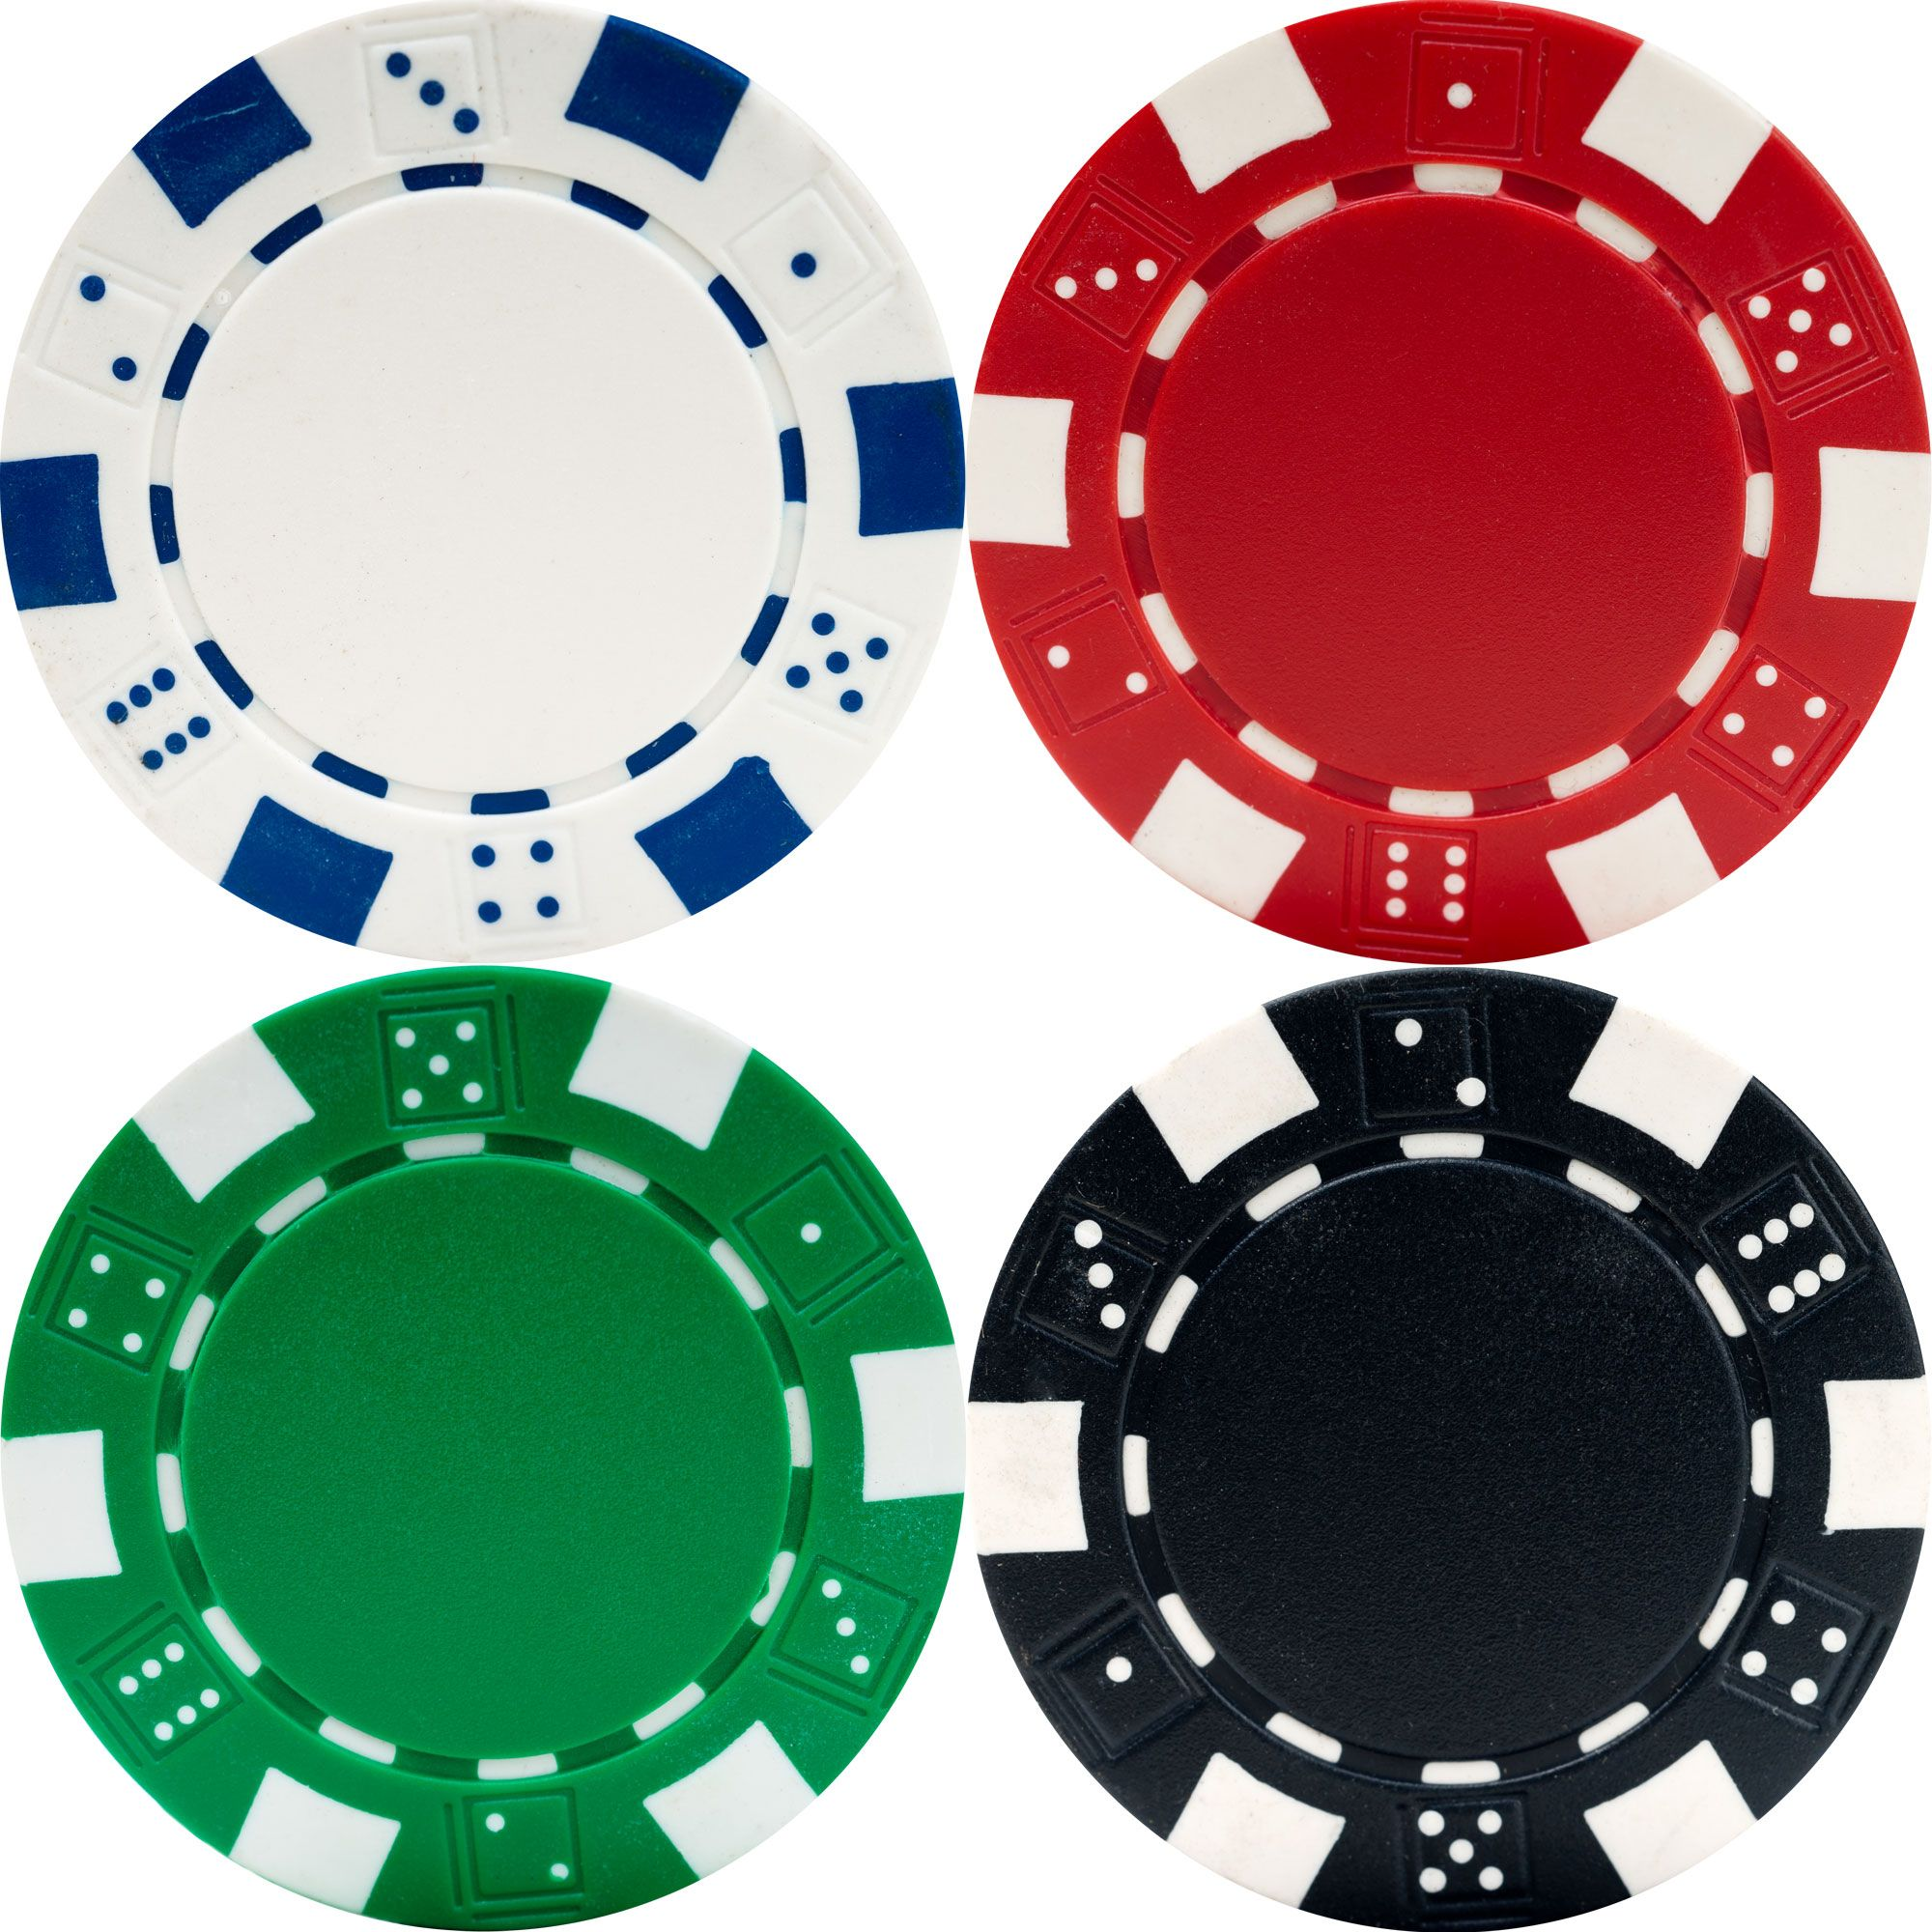 Trademark 500 Dice Style 11.5g Poker Chip Set - Retail Ready!